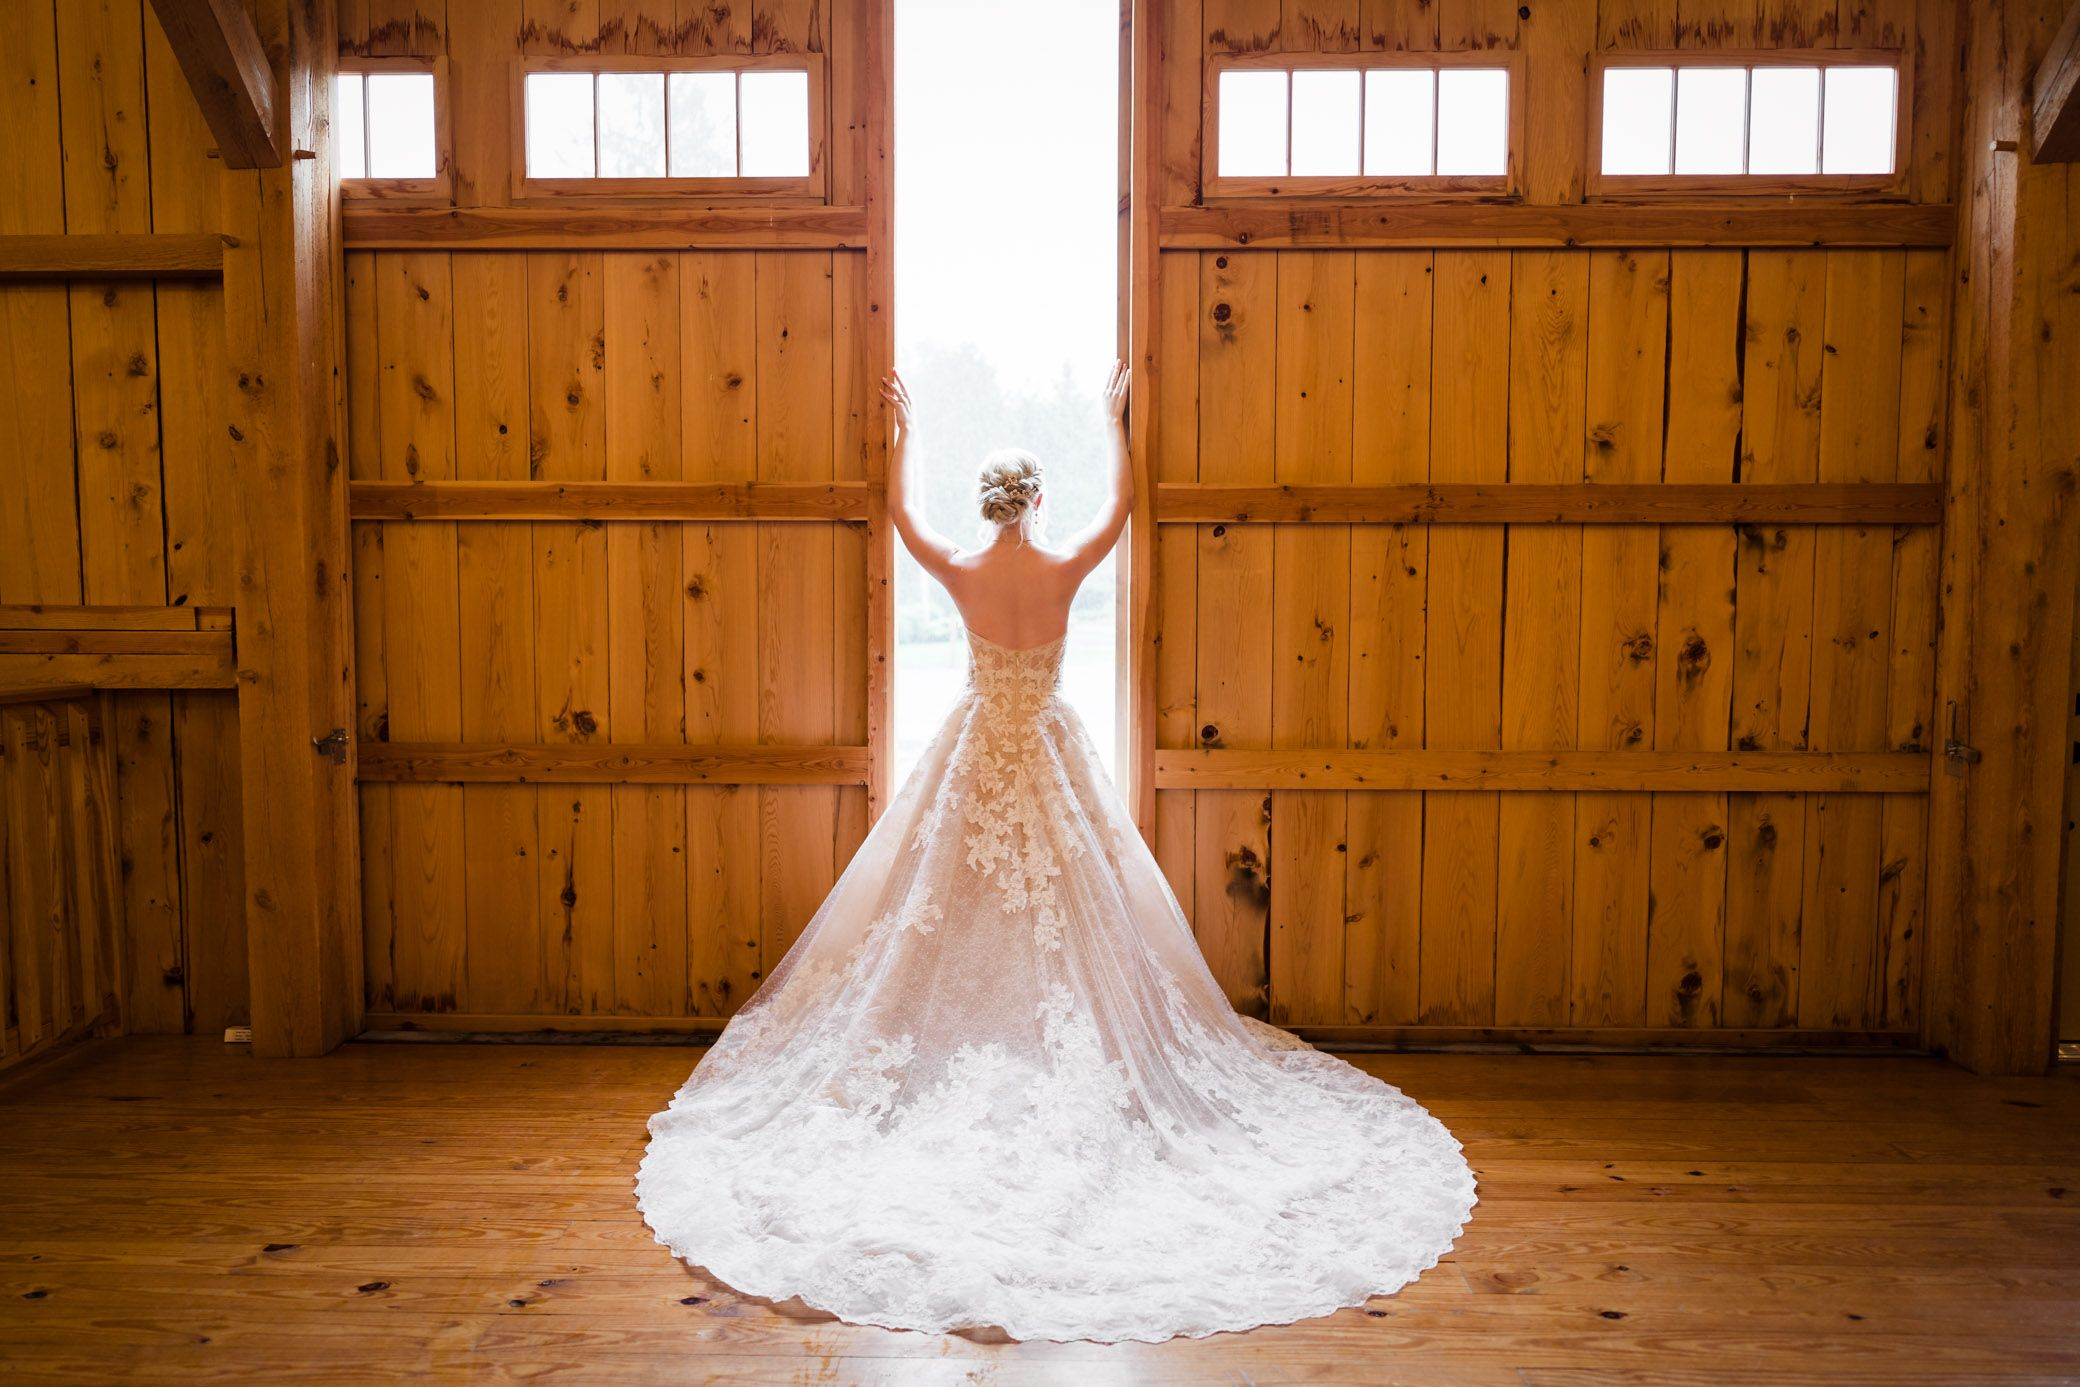 The Barn at Graver's Tree Farm The Blushing Bridal Boutique Gown Rustic Lehigh Valley Wedding Venue Bride Getting Ready